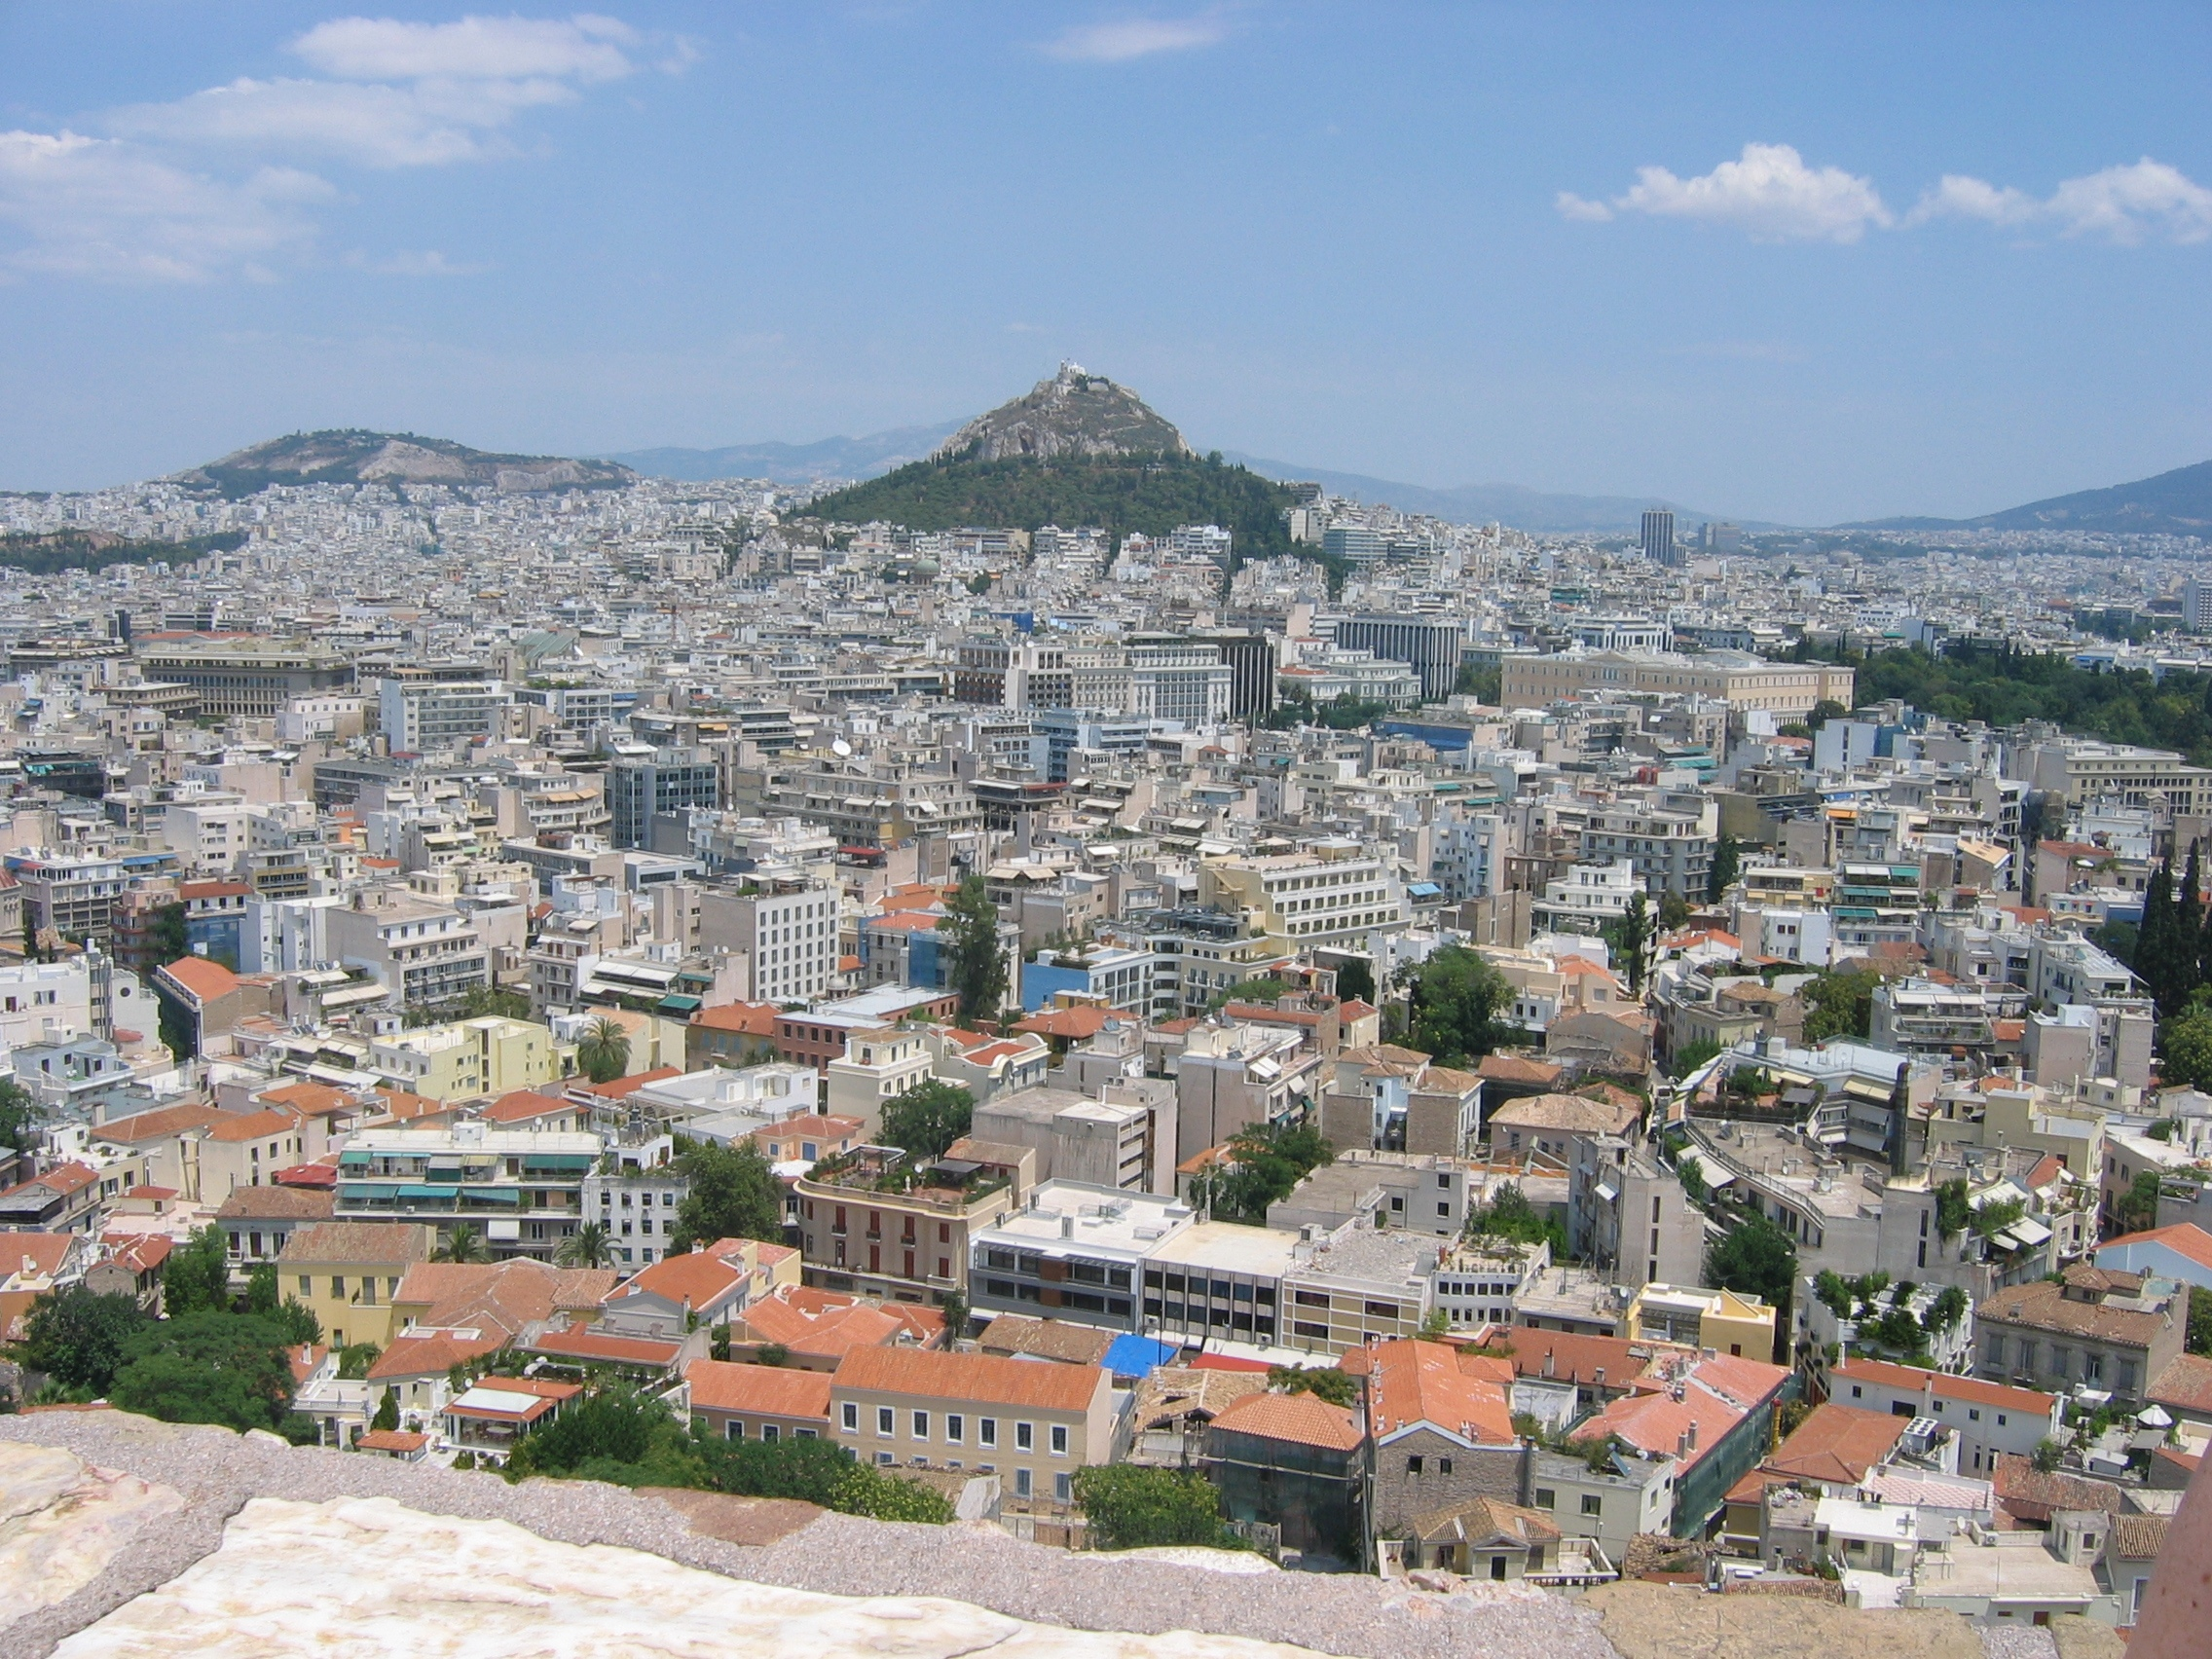 https://upload.wikimedia.org/wikipedia/commons/8/8e/Panoramic_views_of_Athens_%28Greece%29.jpg